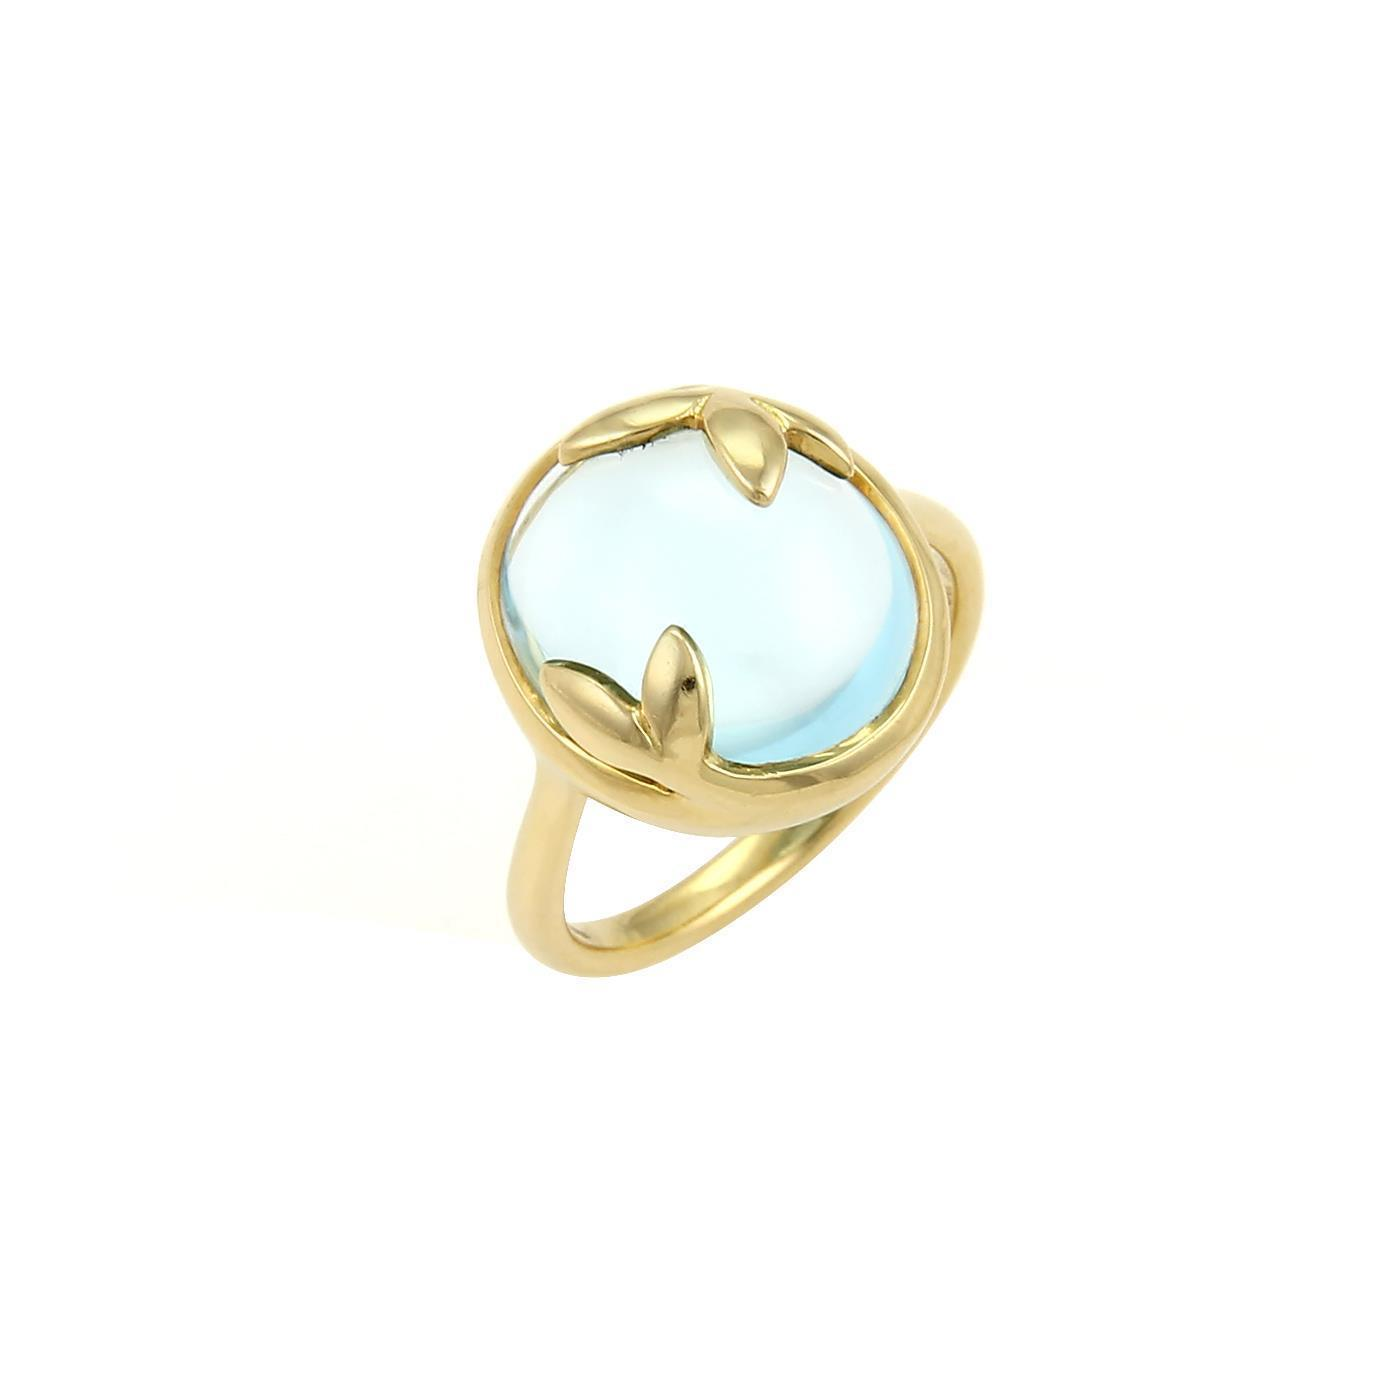 Paloma Picasso Olive Leaf pendant in 18k gold with a blue topaz - Size Tiffany & Co. ZOfSfk